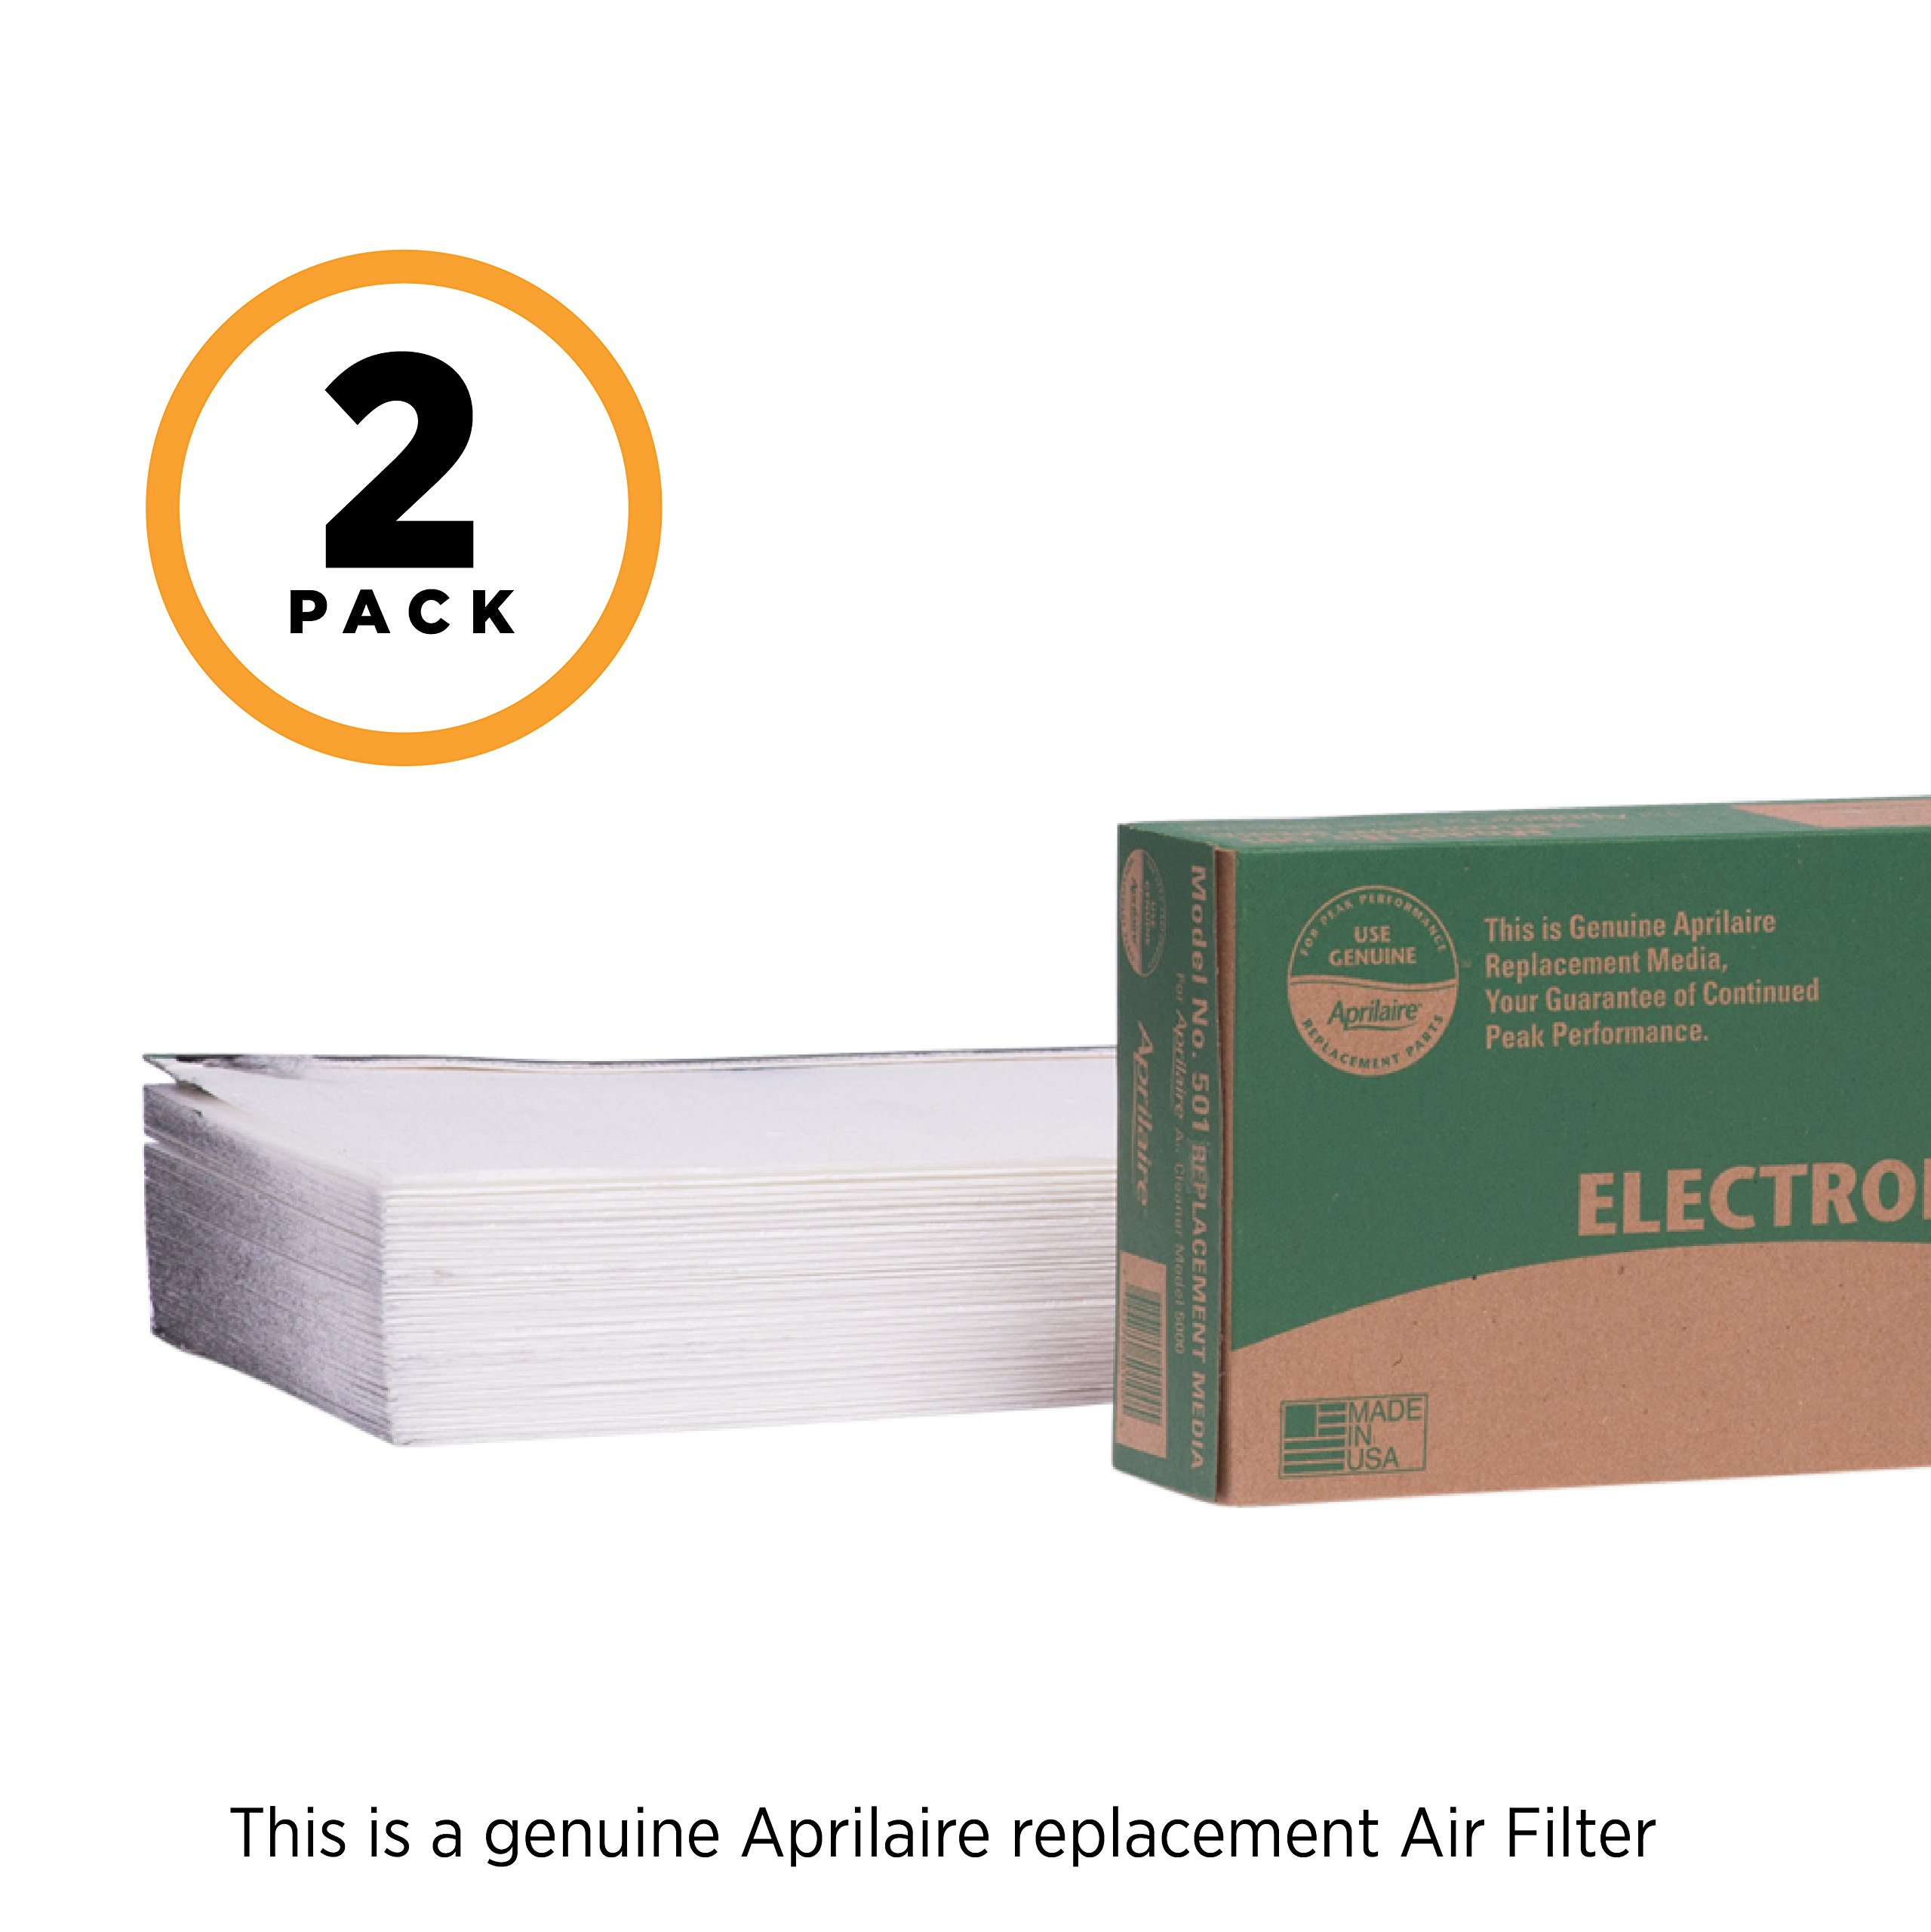 Aprilaire 501 Replacement Filter for Aprilaire Whole House Electronic Air Purifier Model: 5000, MERV 16 (Pack of 2) by Aprilaire